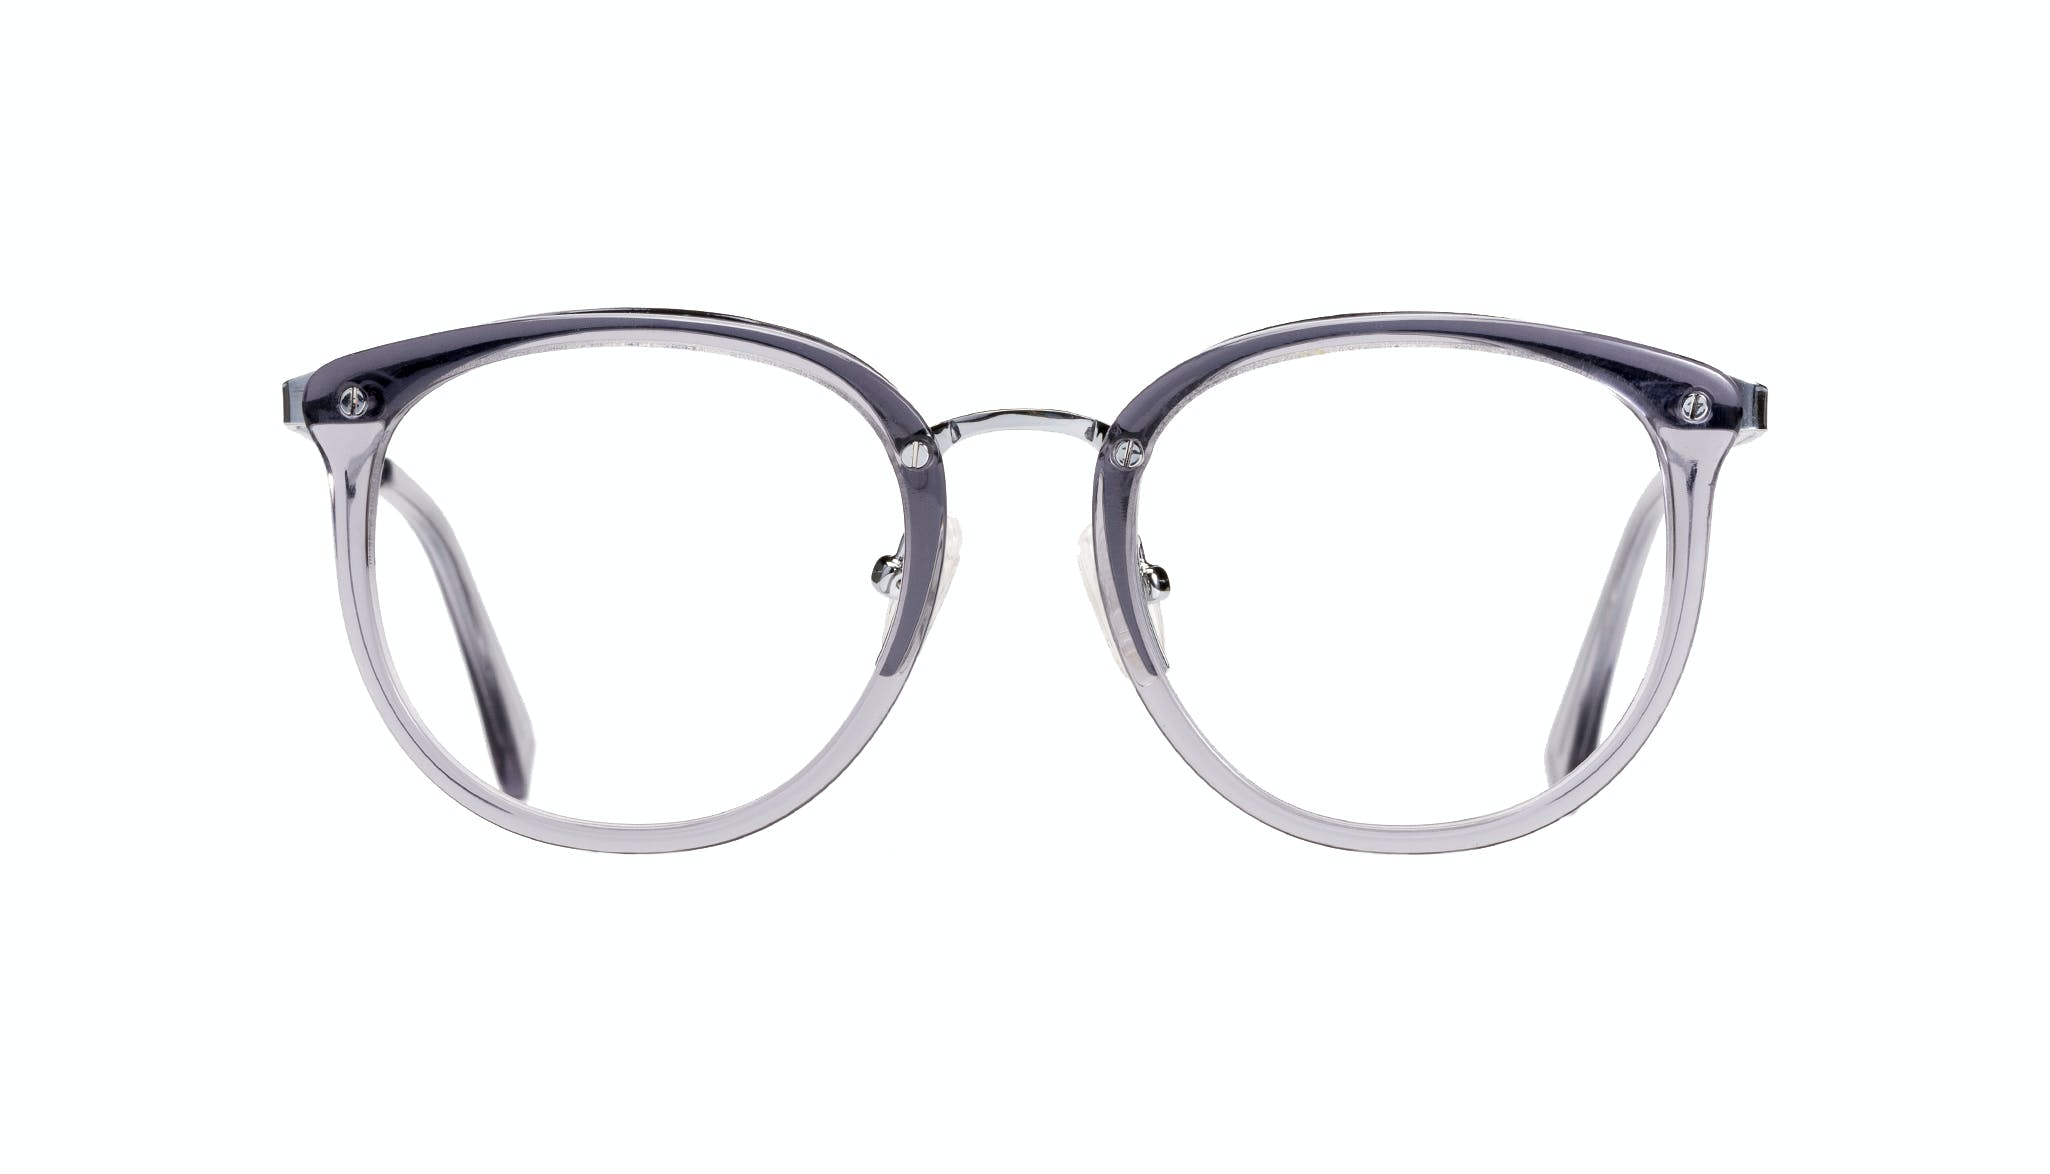 Affordable Fashion Glasses Round Eyeglasses Women Amaze Petite Cloud